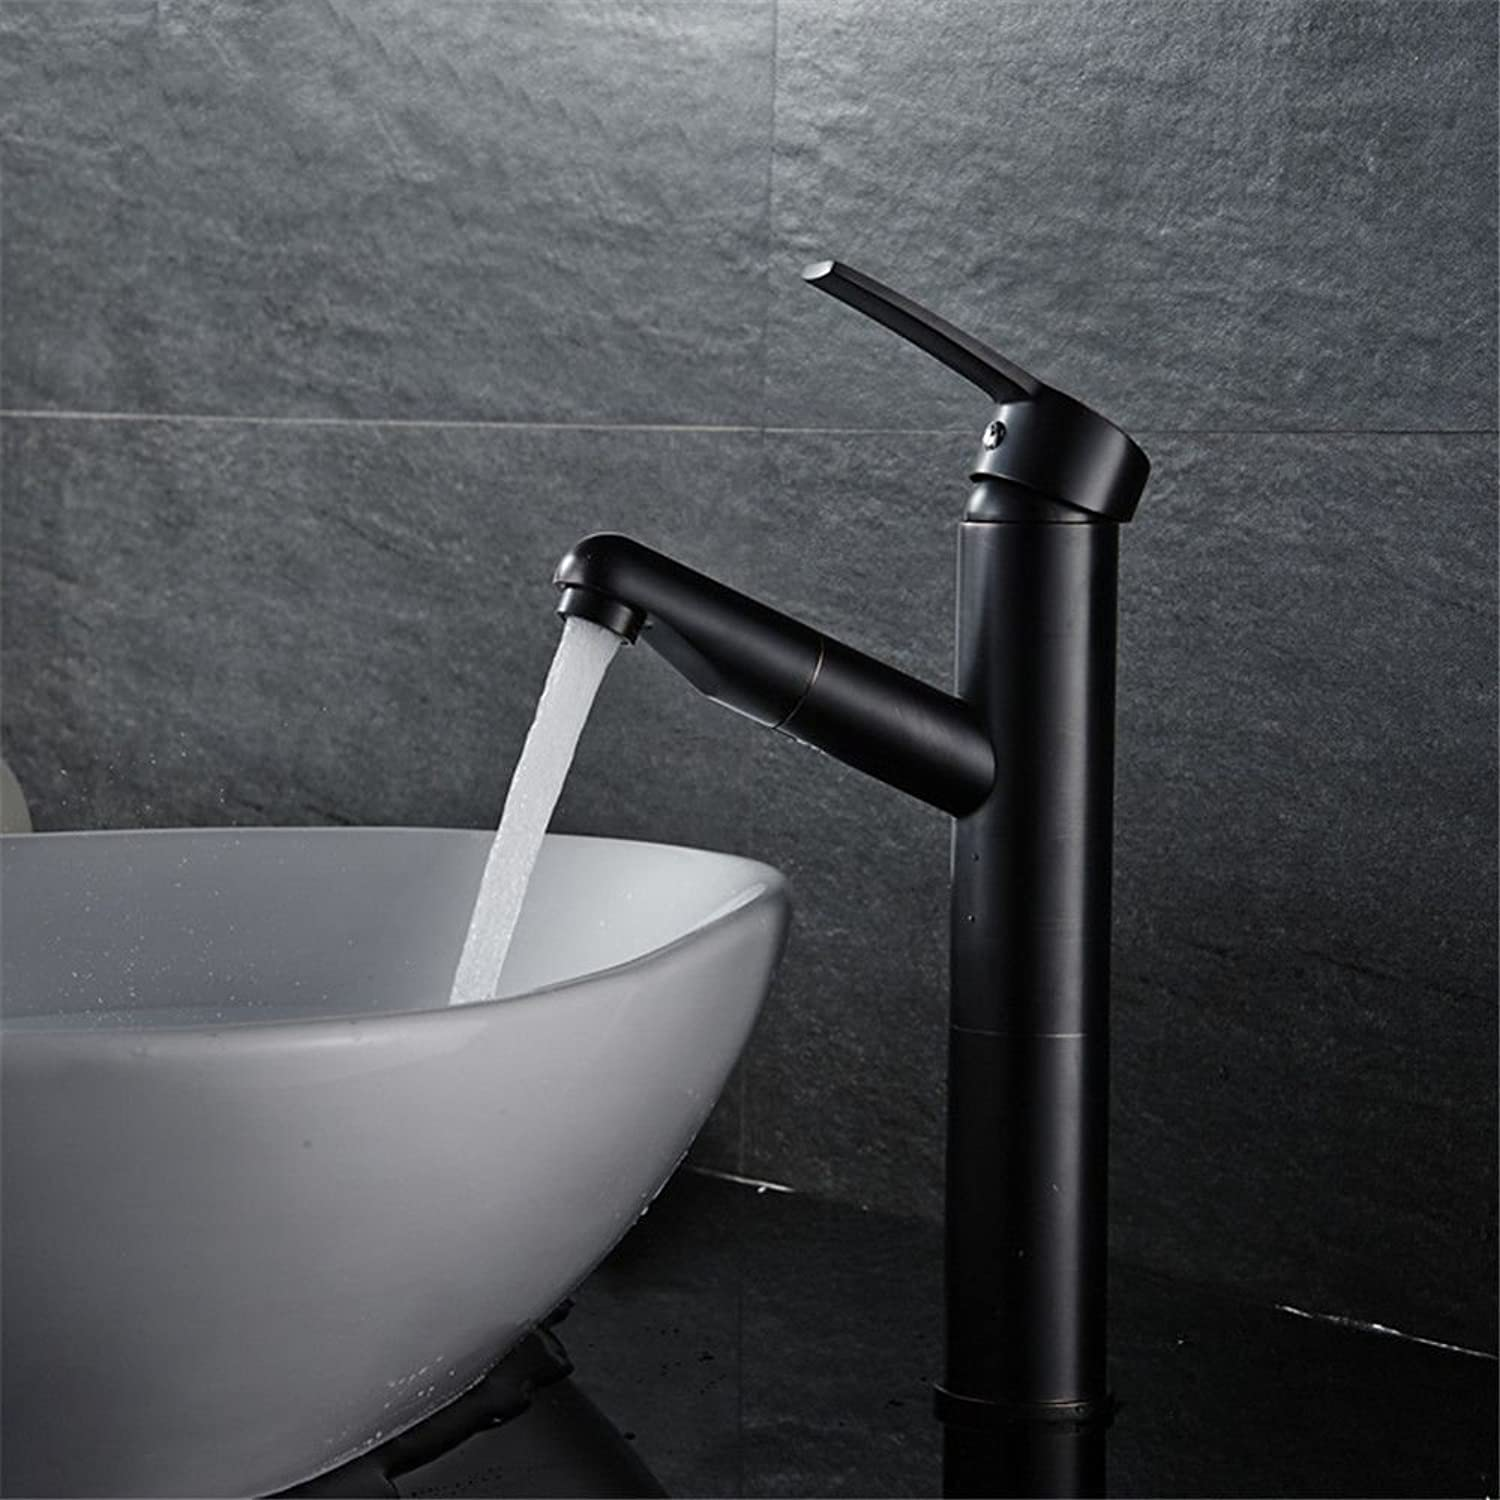 AQMMi Basin Sink Mixer Tap for Lavatory Brass Pull-Out Black Oil Rubbed Bronze Hot and Cold Water Extendable Single Lever Bathroom Vanity Sink Faucet